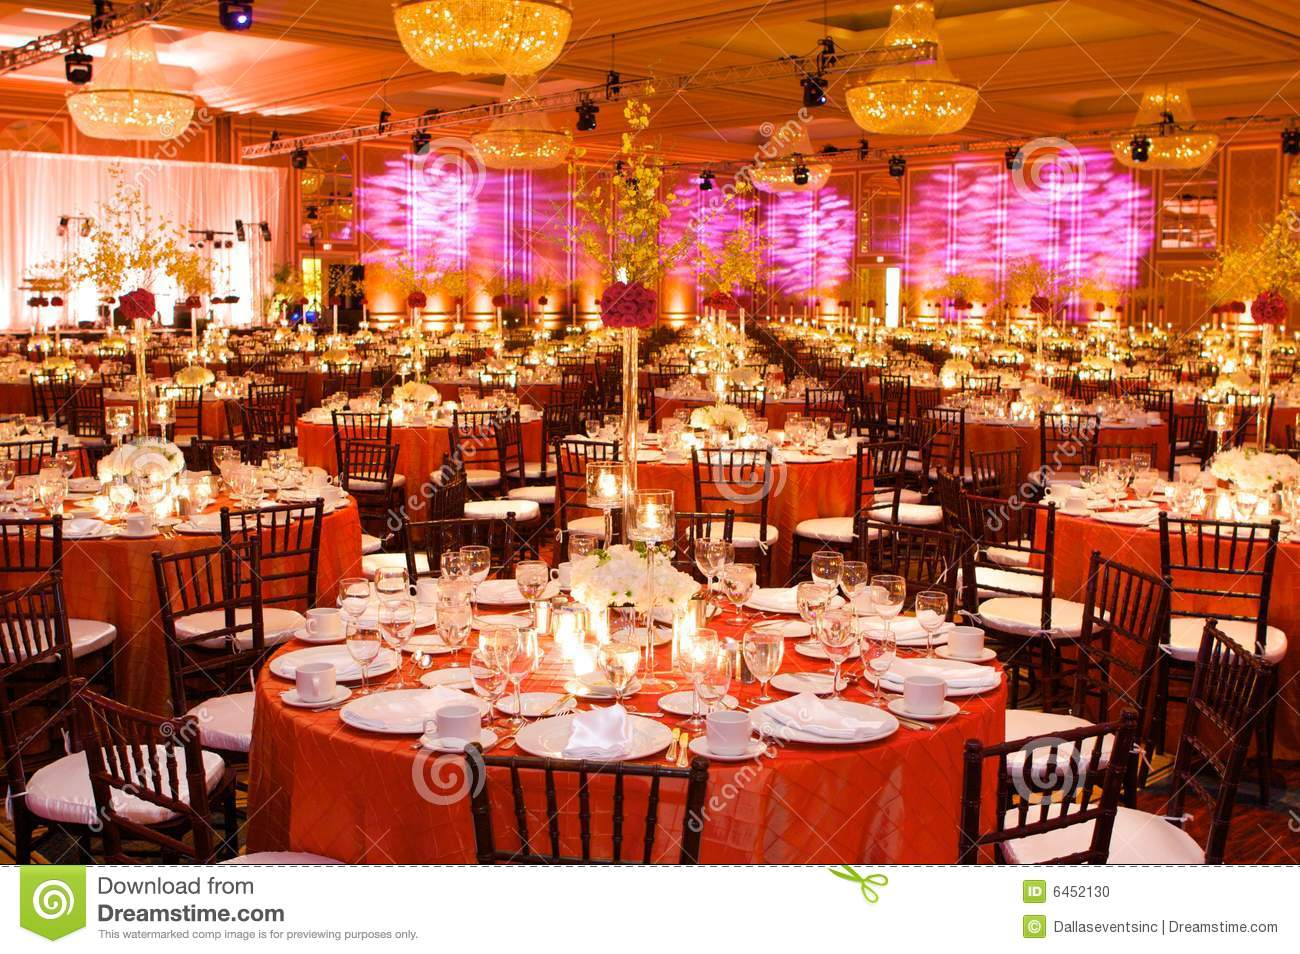 Table Setting At A Luxury Wedding Reception Stock Photo - Image of ...